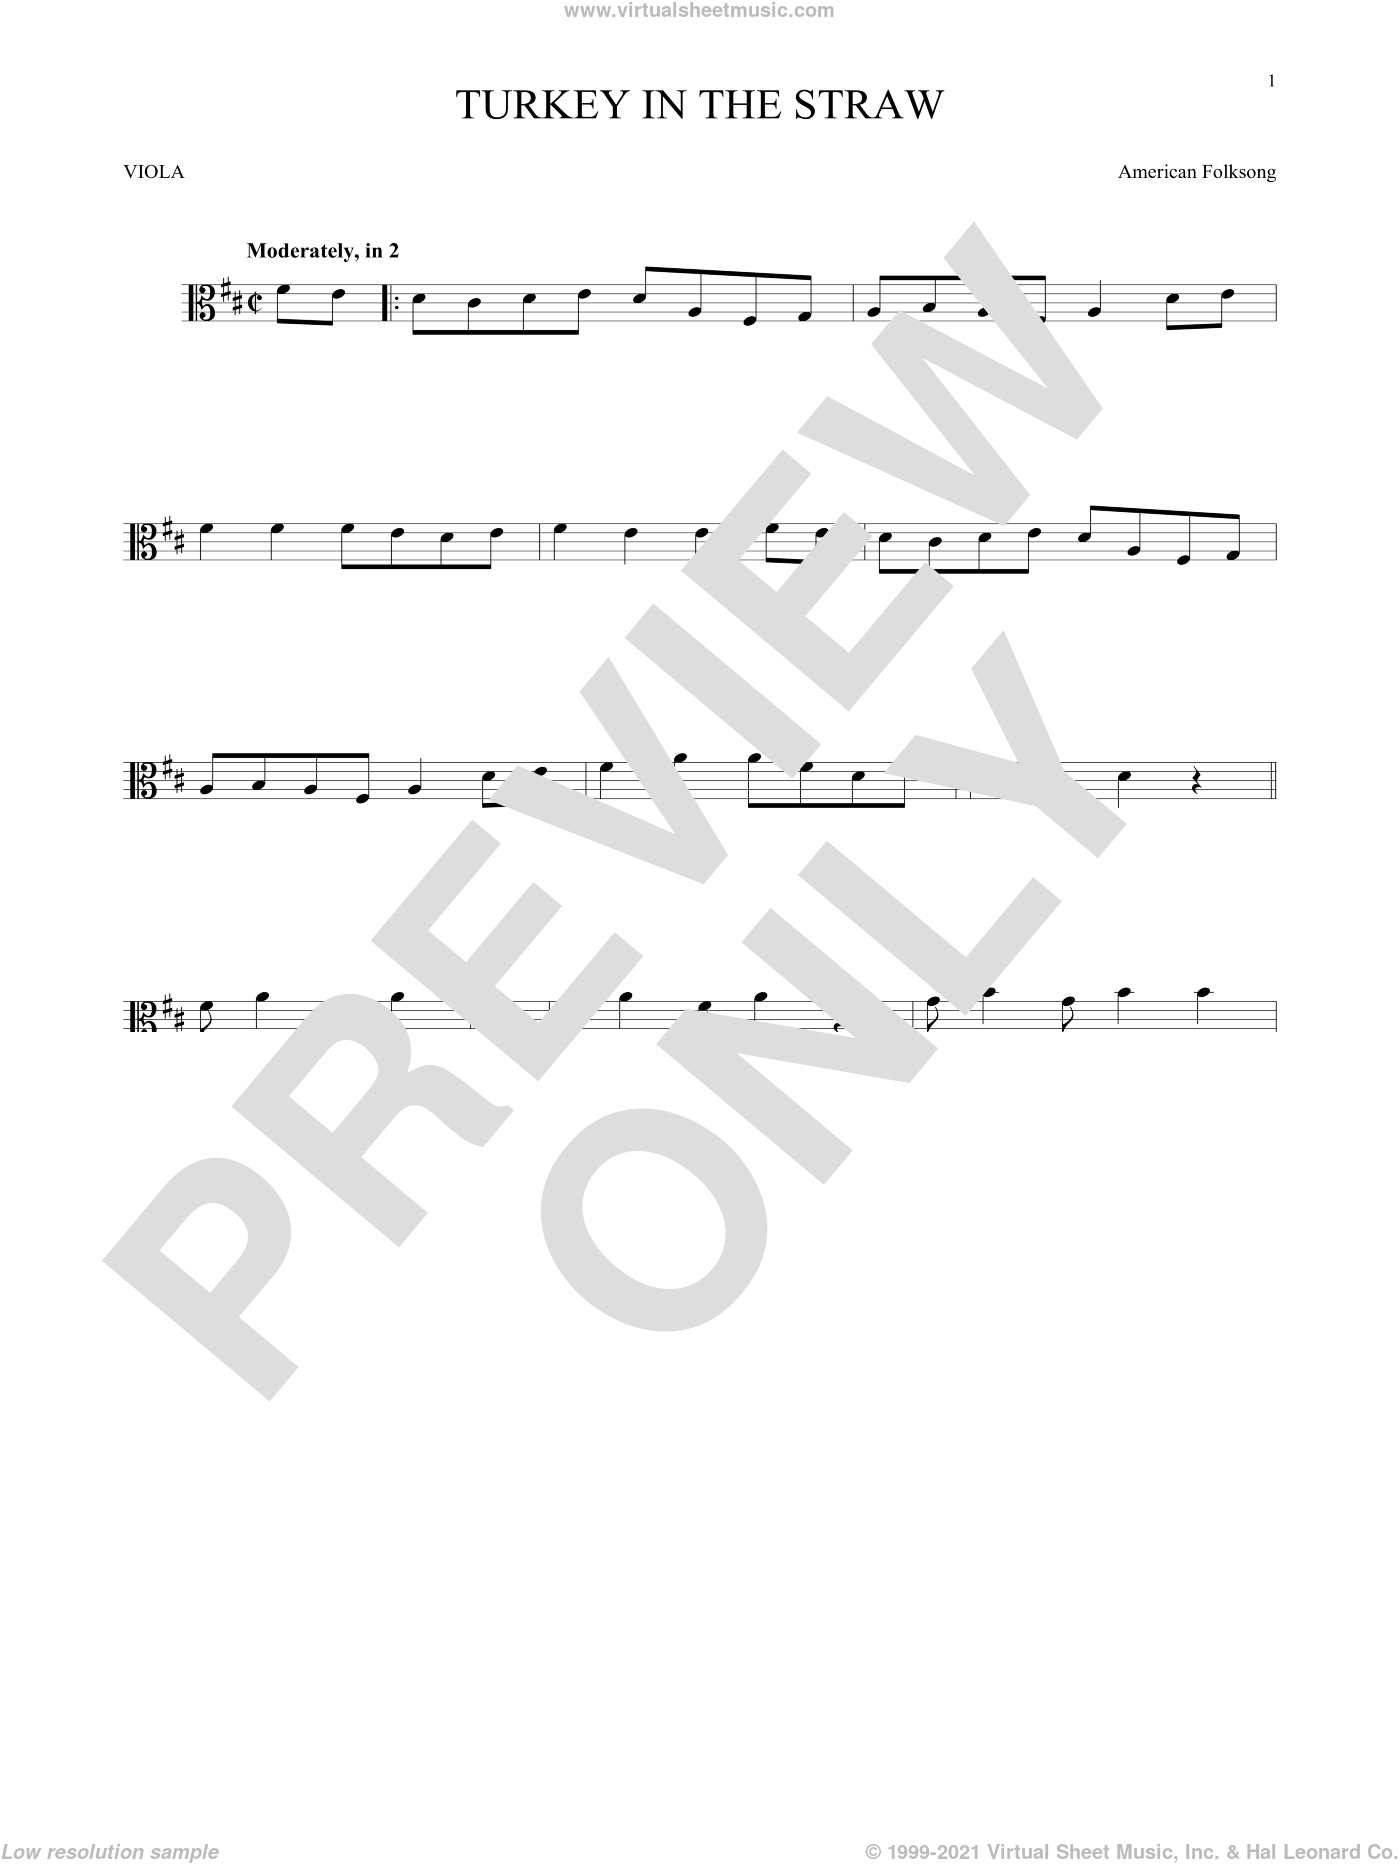 Turkey In The Straw sheet music for viola solo by American Folksong, intermediate skill level